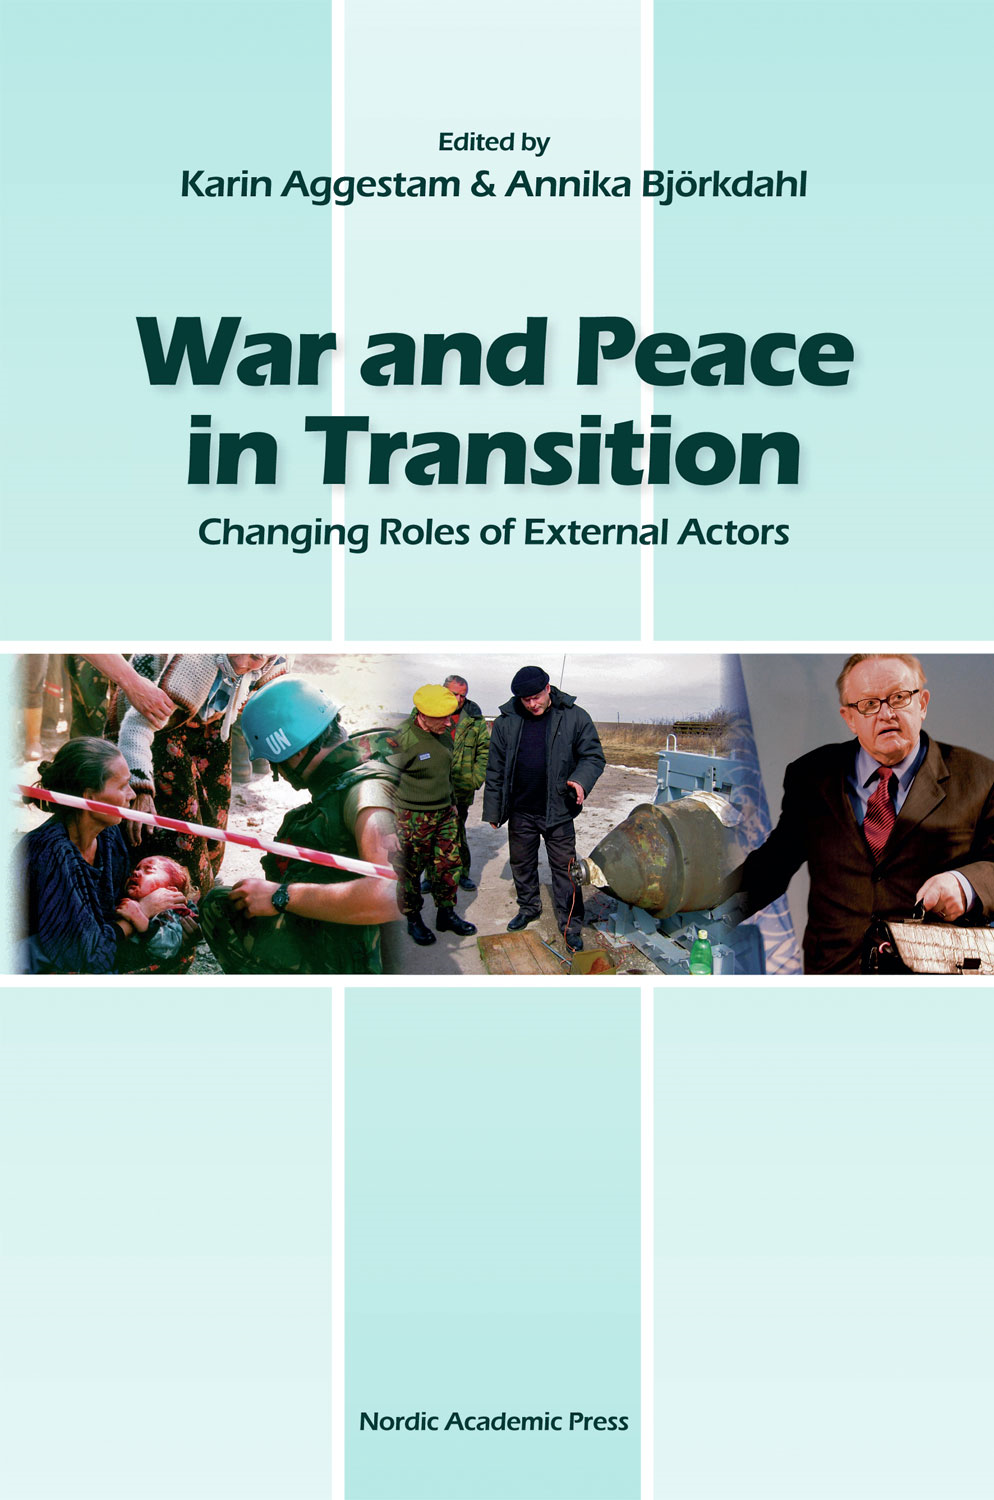 War and Peace in Transition: Changing Roles of External Actors